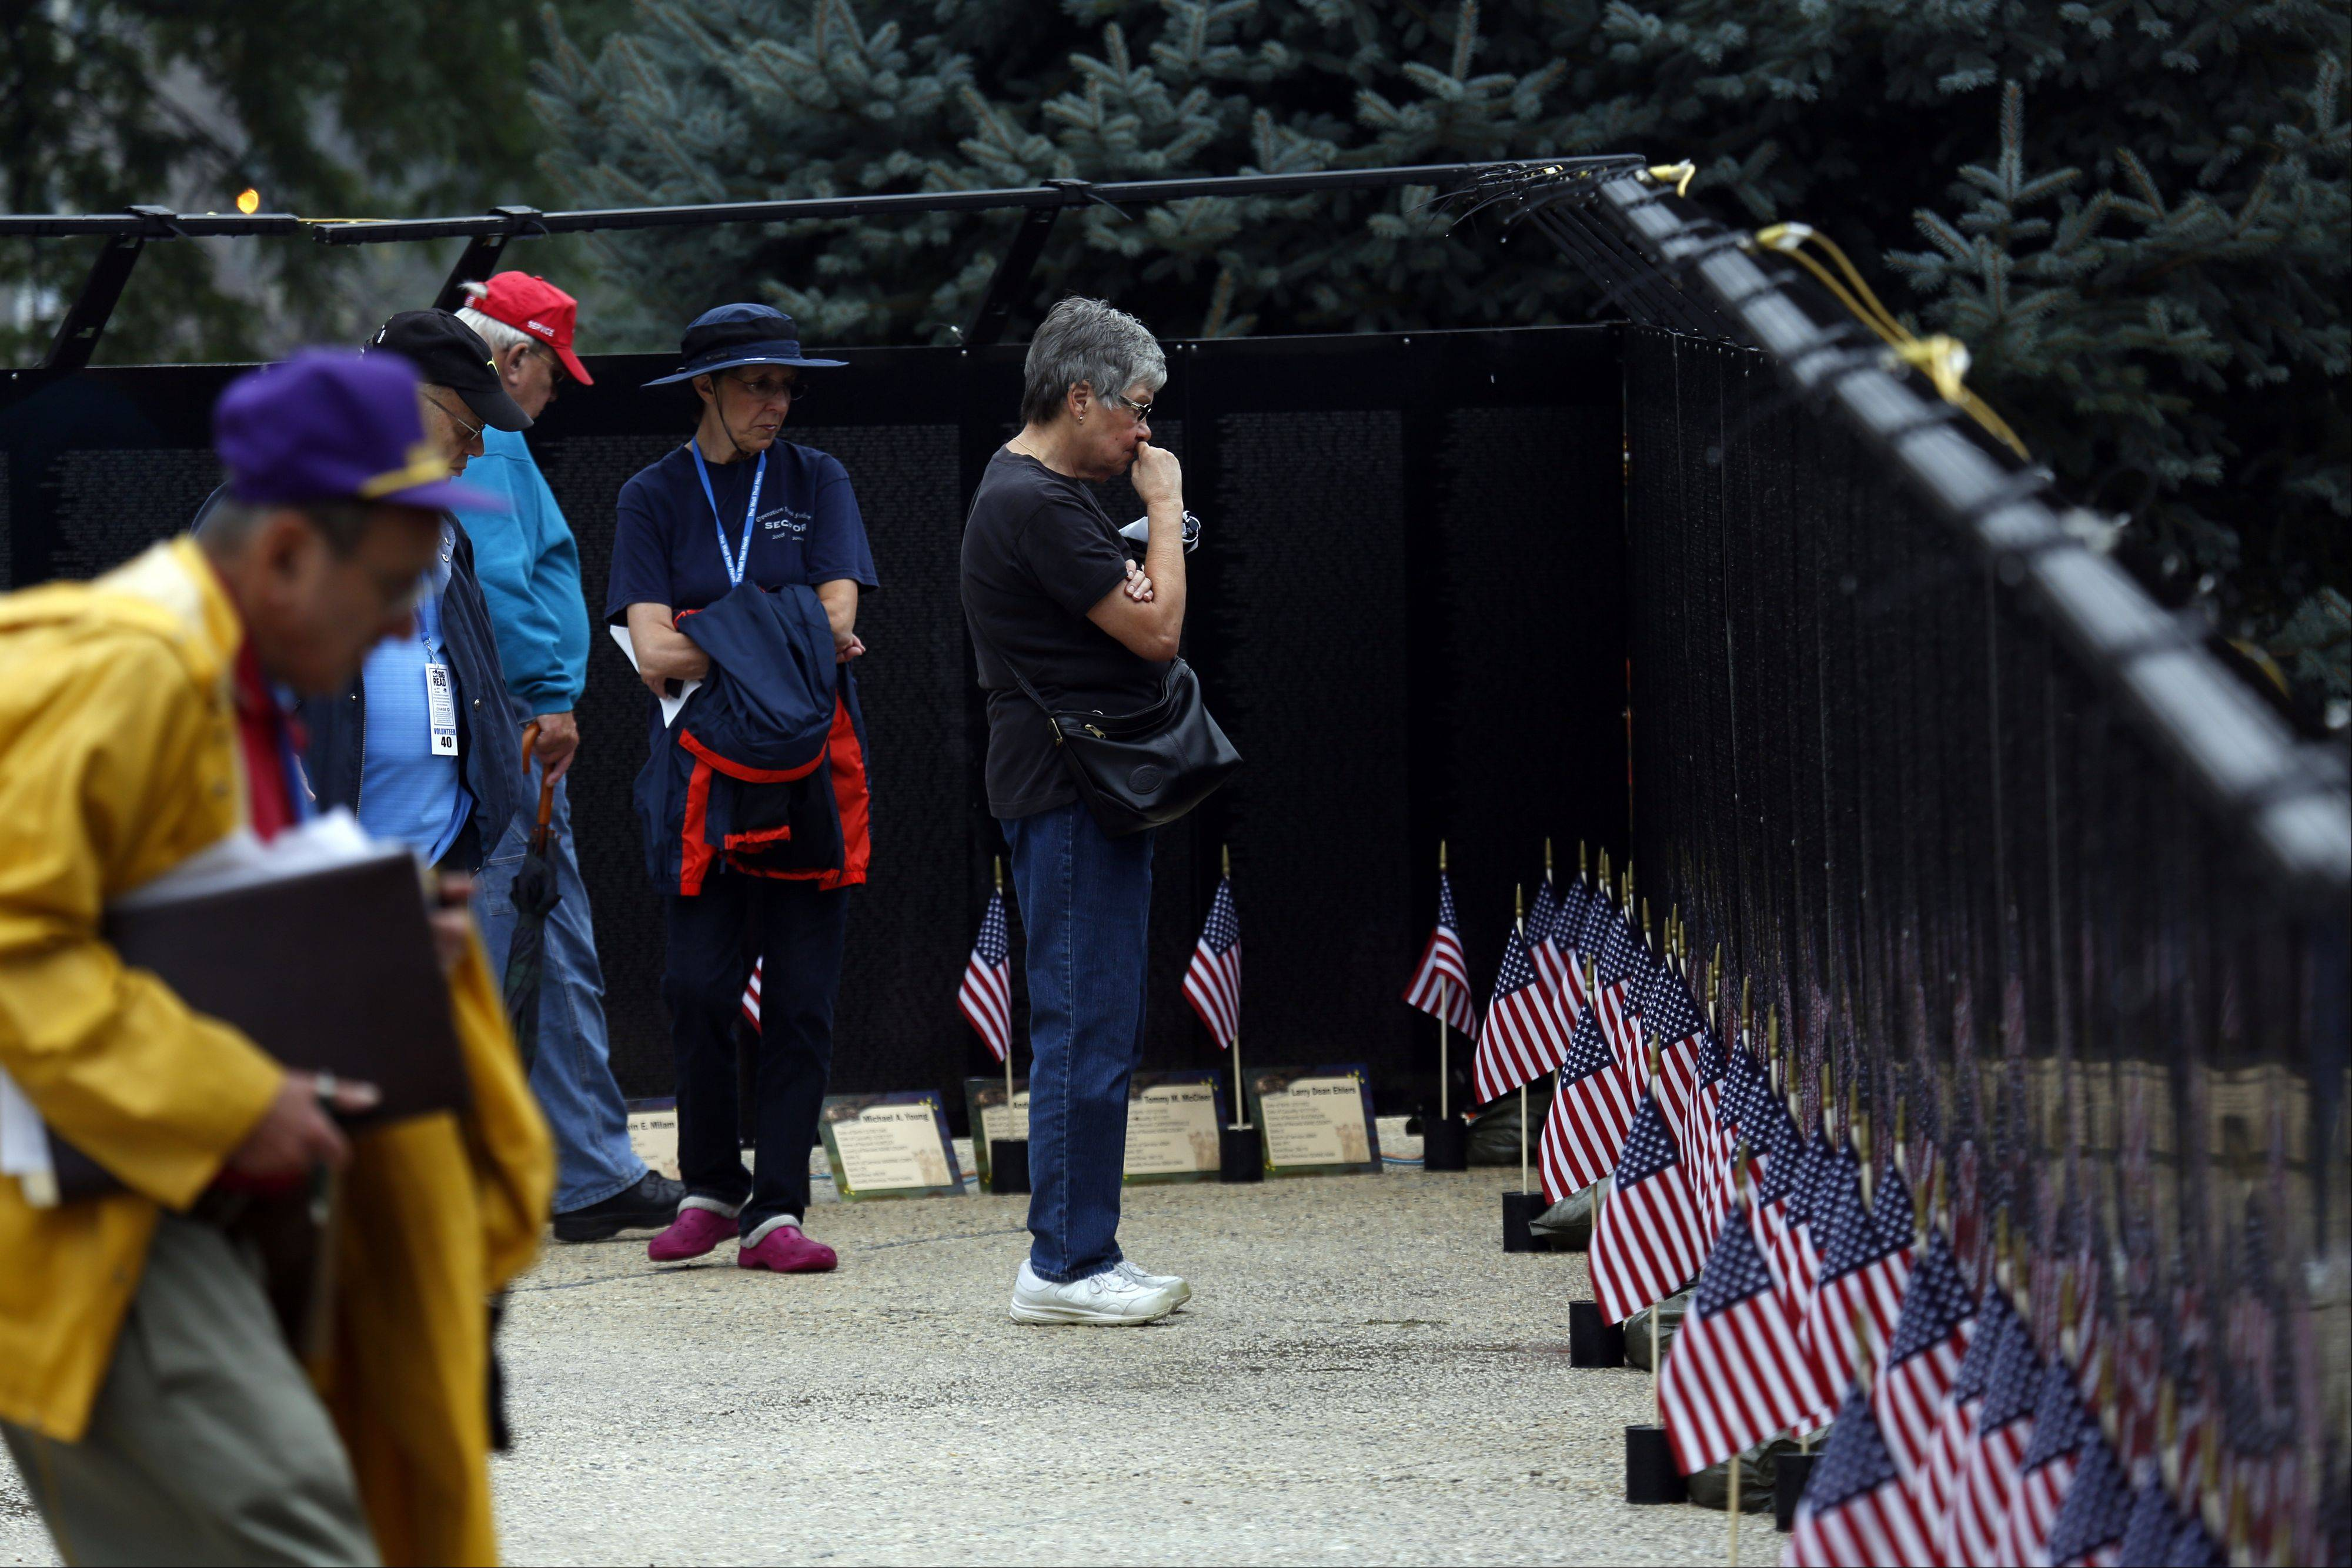 People in Elgin pause for a look at the half-size replica of the Vietnam Wall in Washington D.C.